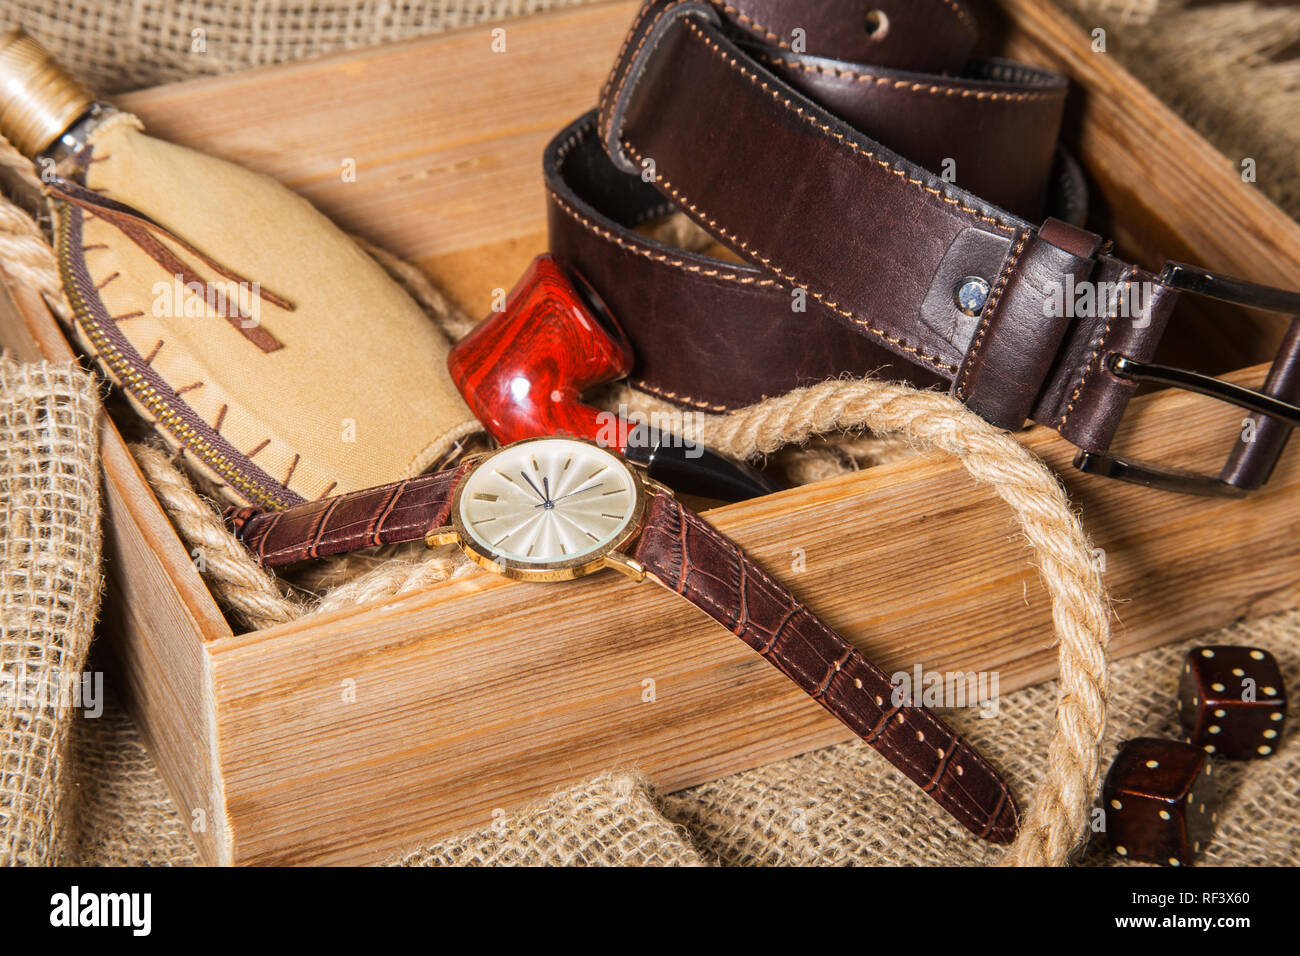 Men's accessories with brown leather belt, sunglasses, watch, smoking pipe and bottle with perfume on rustic background. Stock Photo